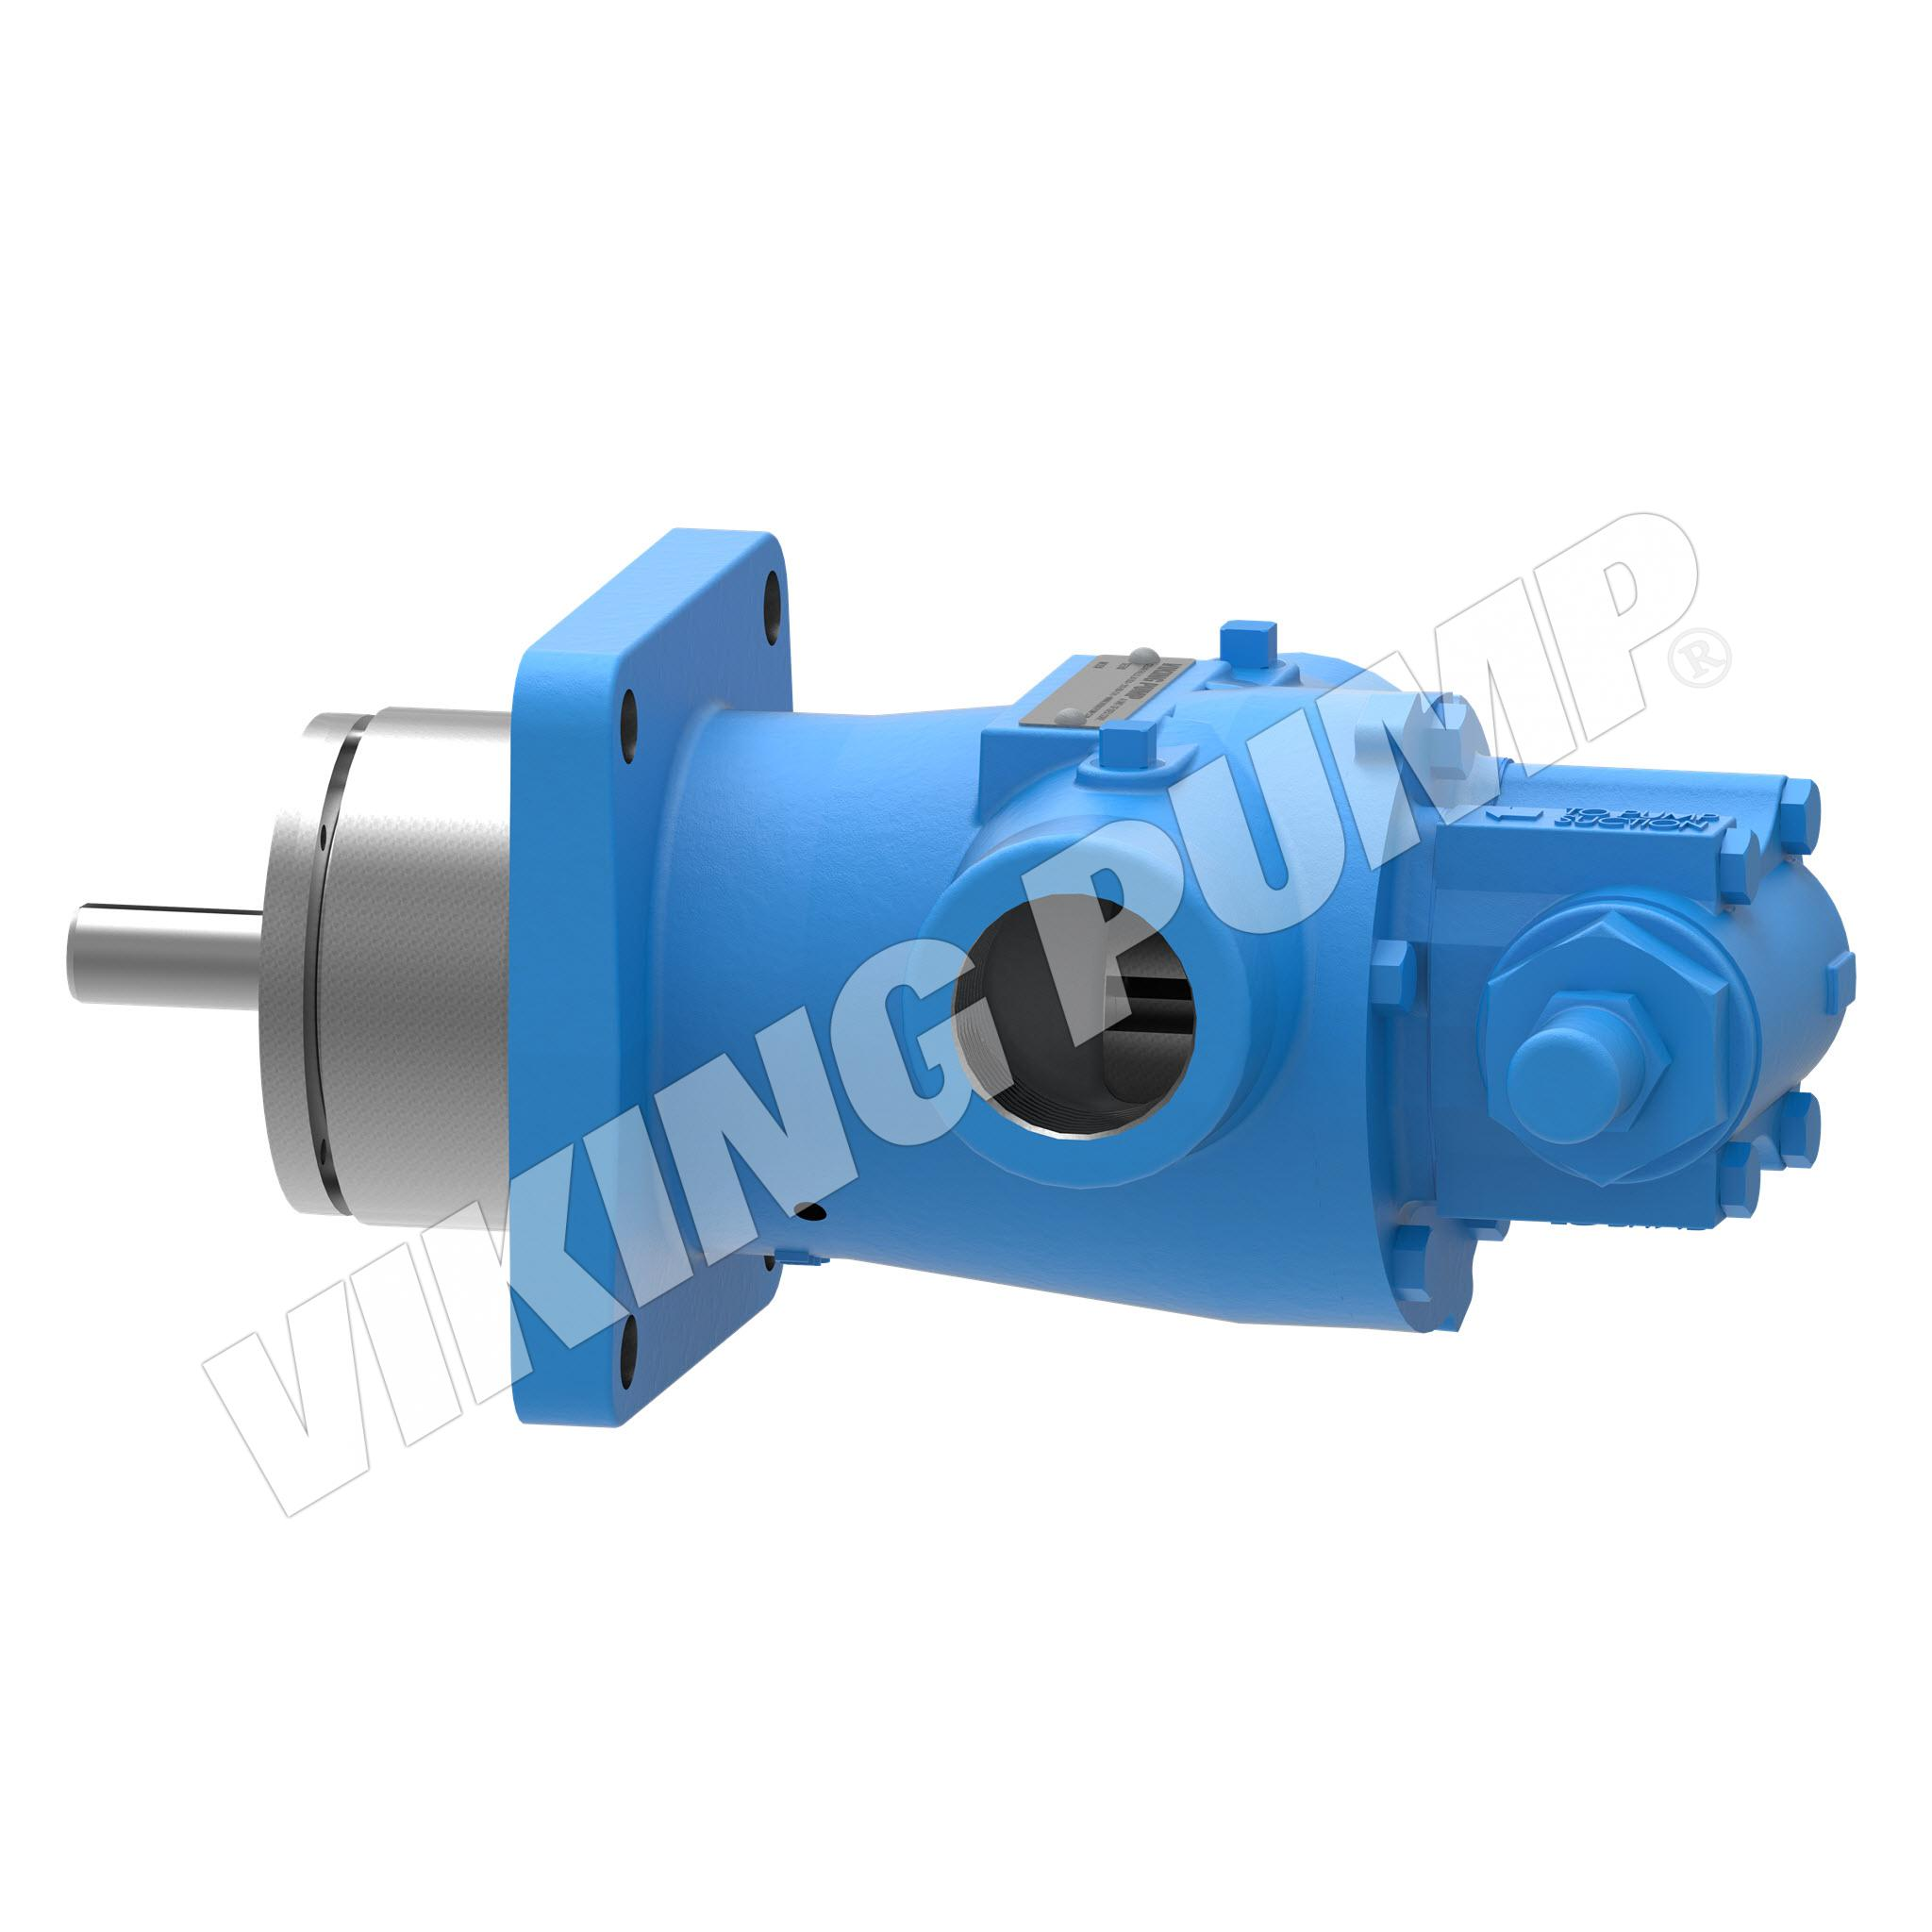 Model HL495, Unmounted, Mechanical Seal, Relief Valve Pump